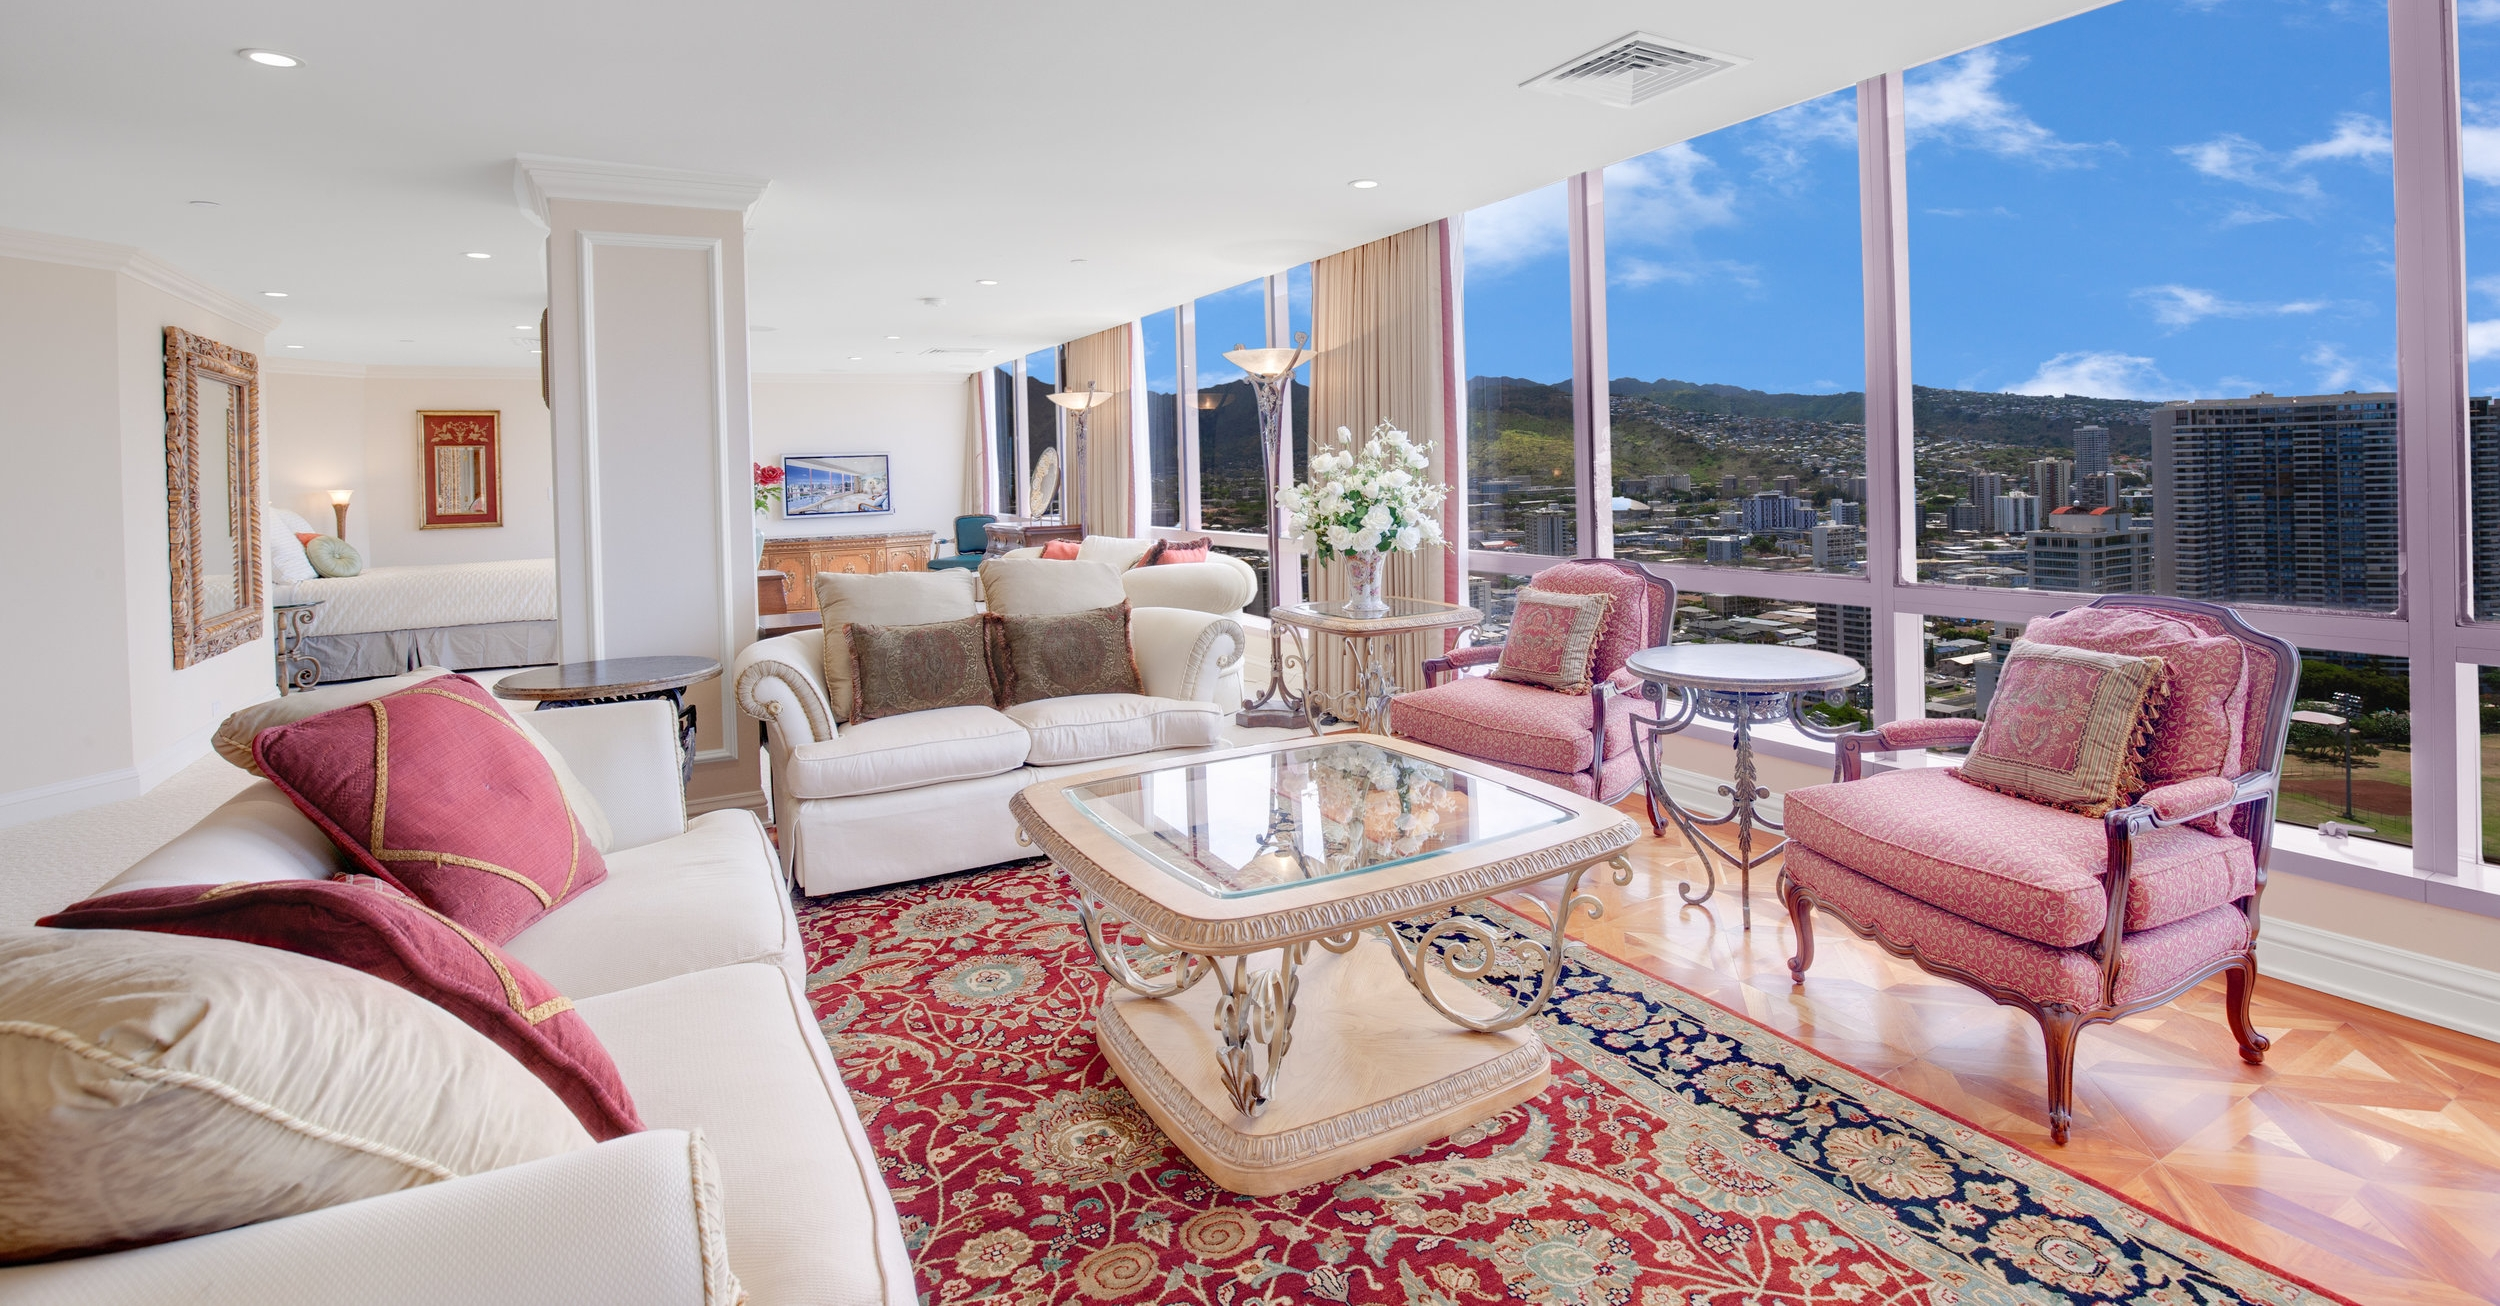 1 BDS LUXURY plus Den PENTHOUSE   $13,500 / monthly - Contact us for special rates  FURNISHED  1 BEDROOM  1.5 BATHROOM  2,134 sq. ft.  Hawaii State License #: GE-080-506-4704-01, TA-080-506-4704-01